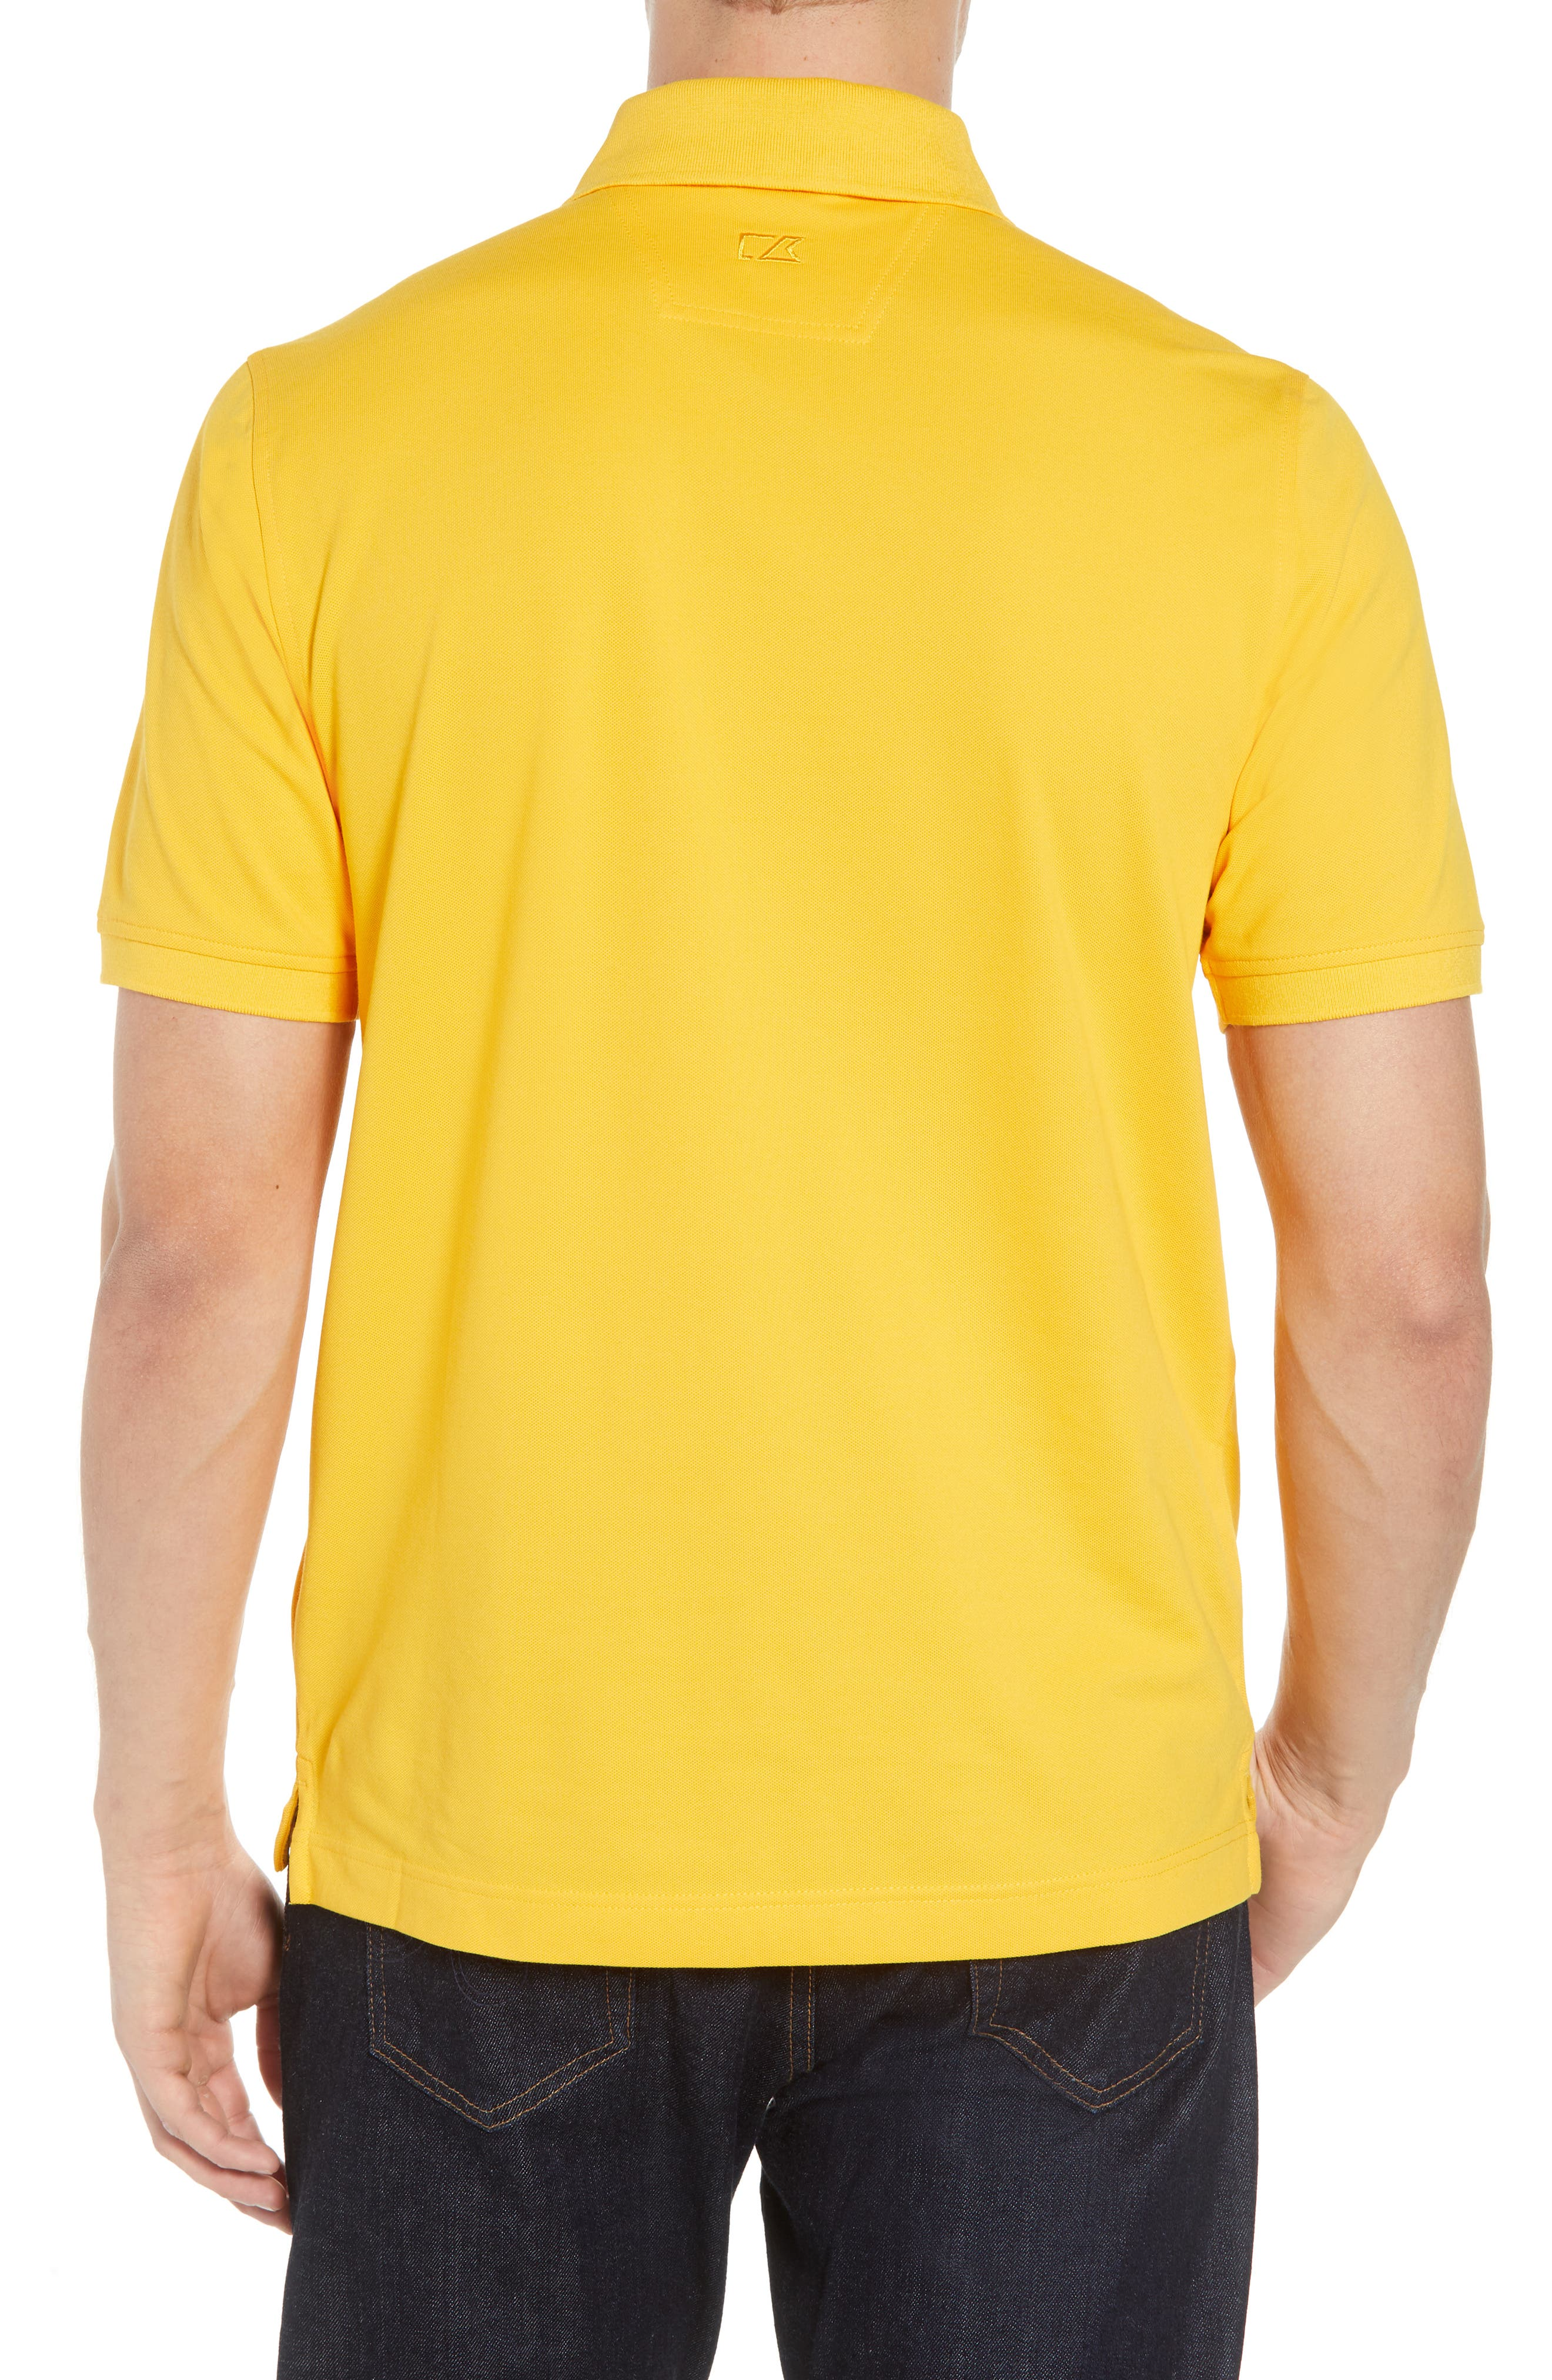 Los Angeles Chargers - Advantage Regular Fit DryTec Polo,                             Alternate thumbnail 2, color,                             COLLEGE GOLD